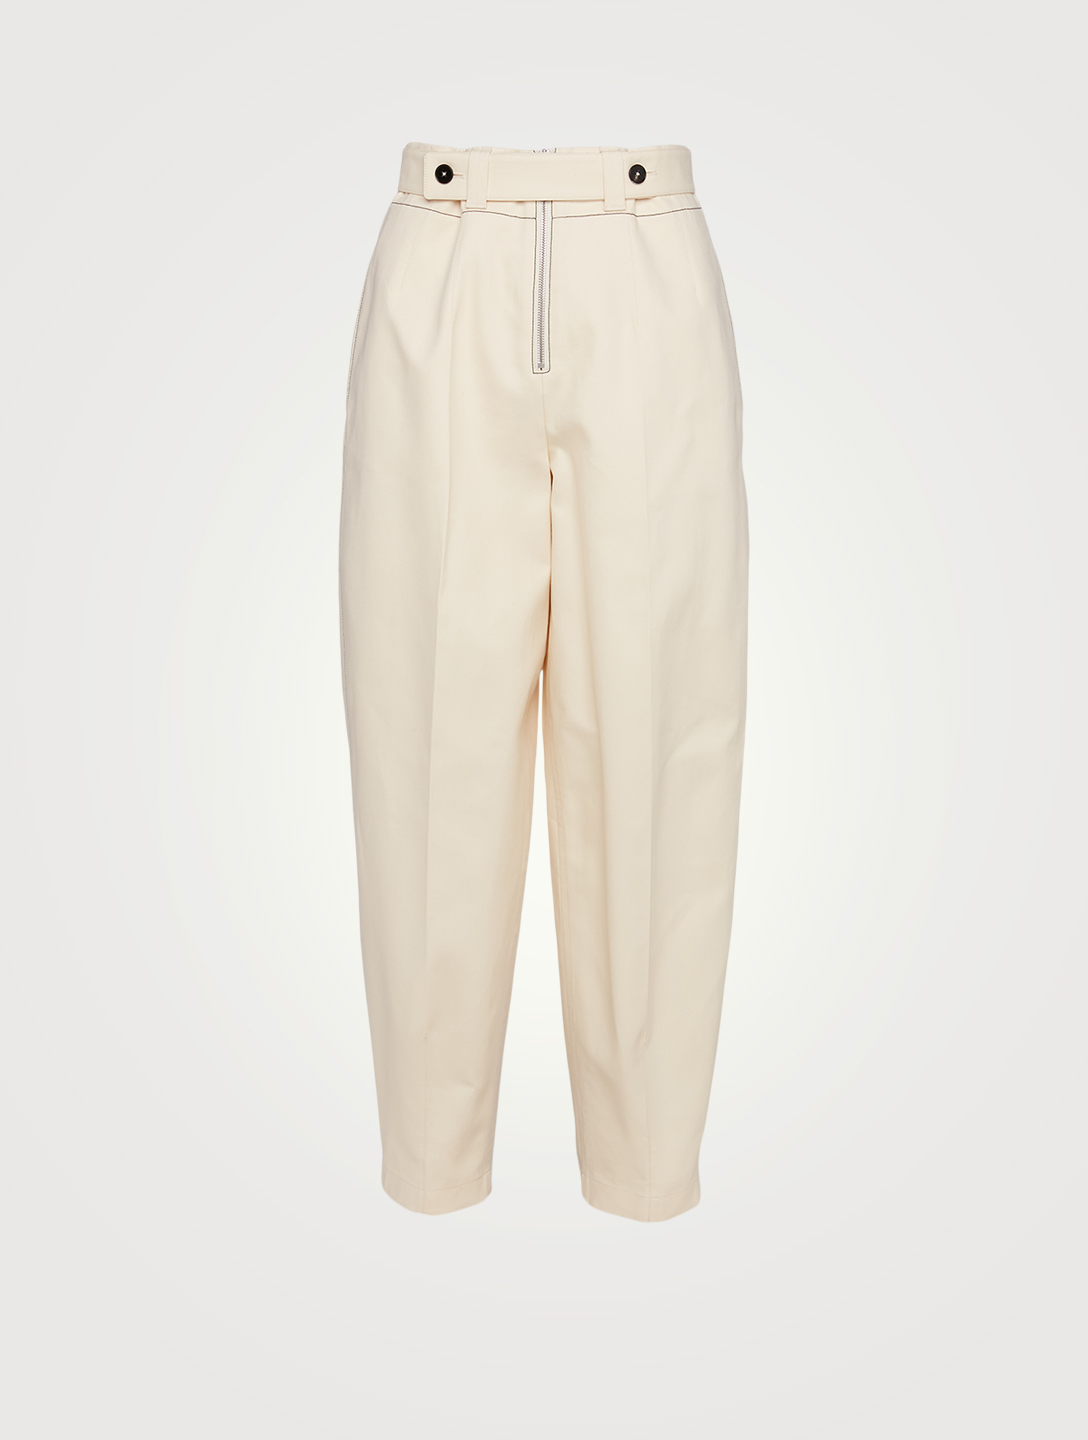 JIL SANDER Cotton Tapered Pants With Darted Ankle Women's Beige